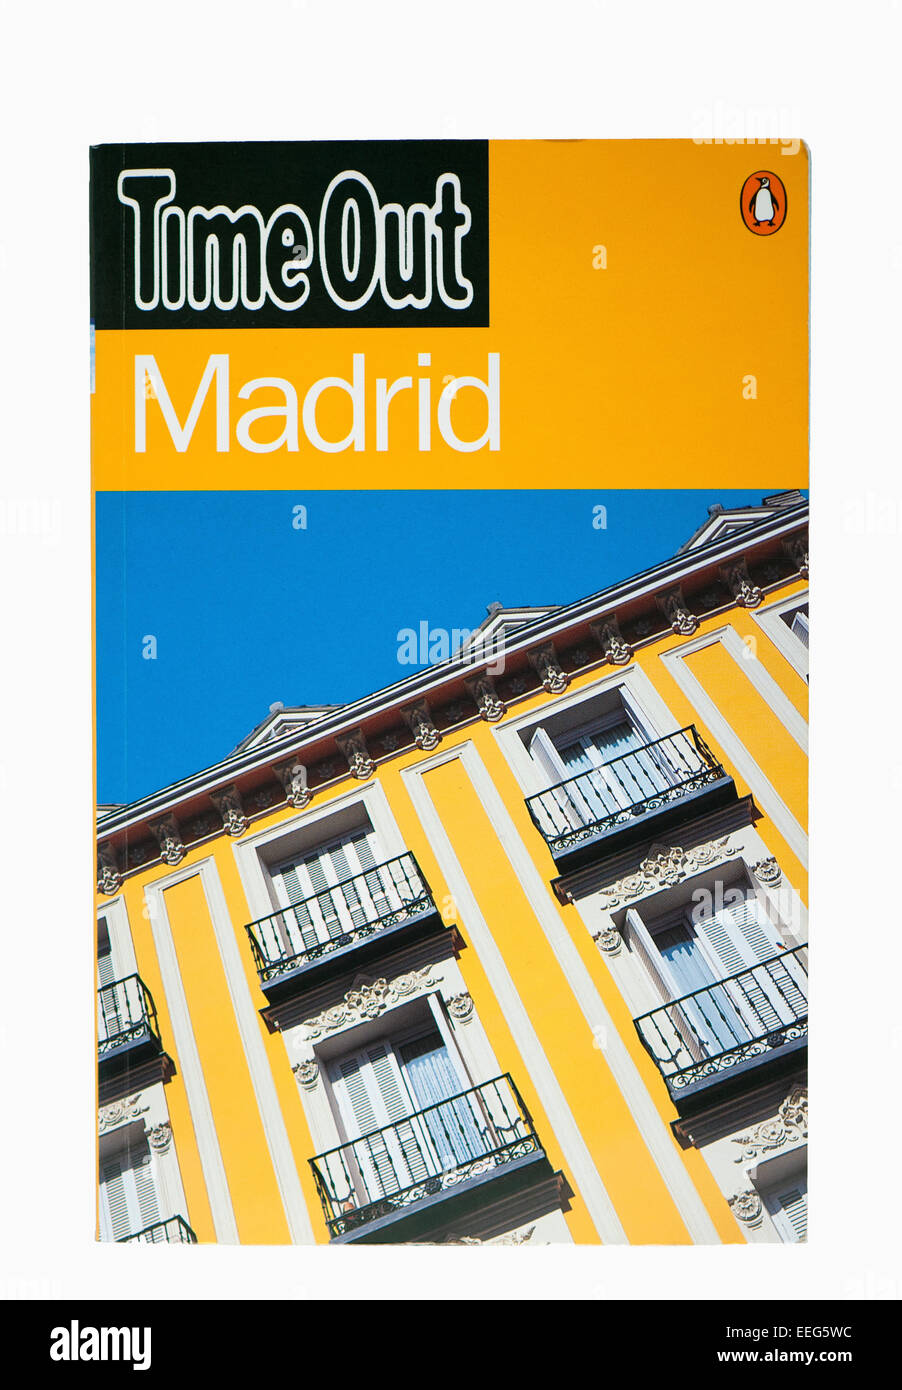 Madrid Time Out Travel Guide - Stock Image